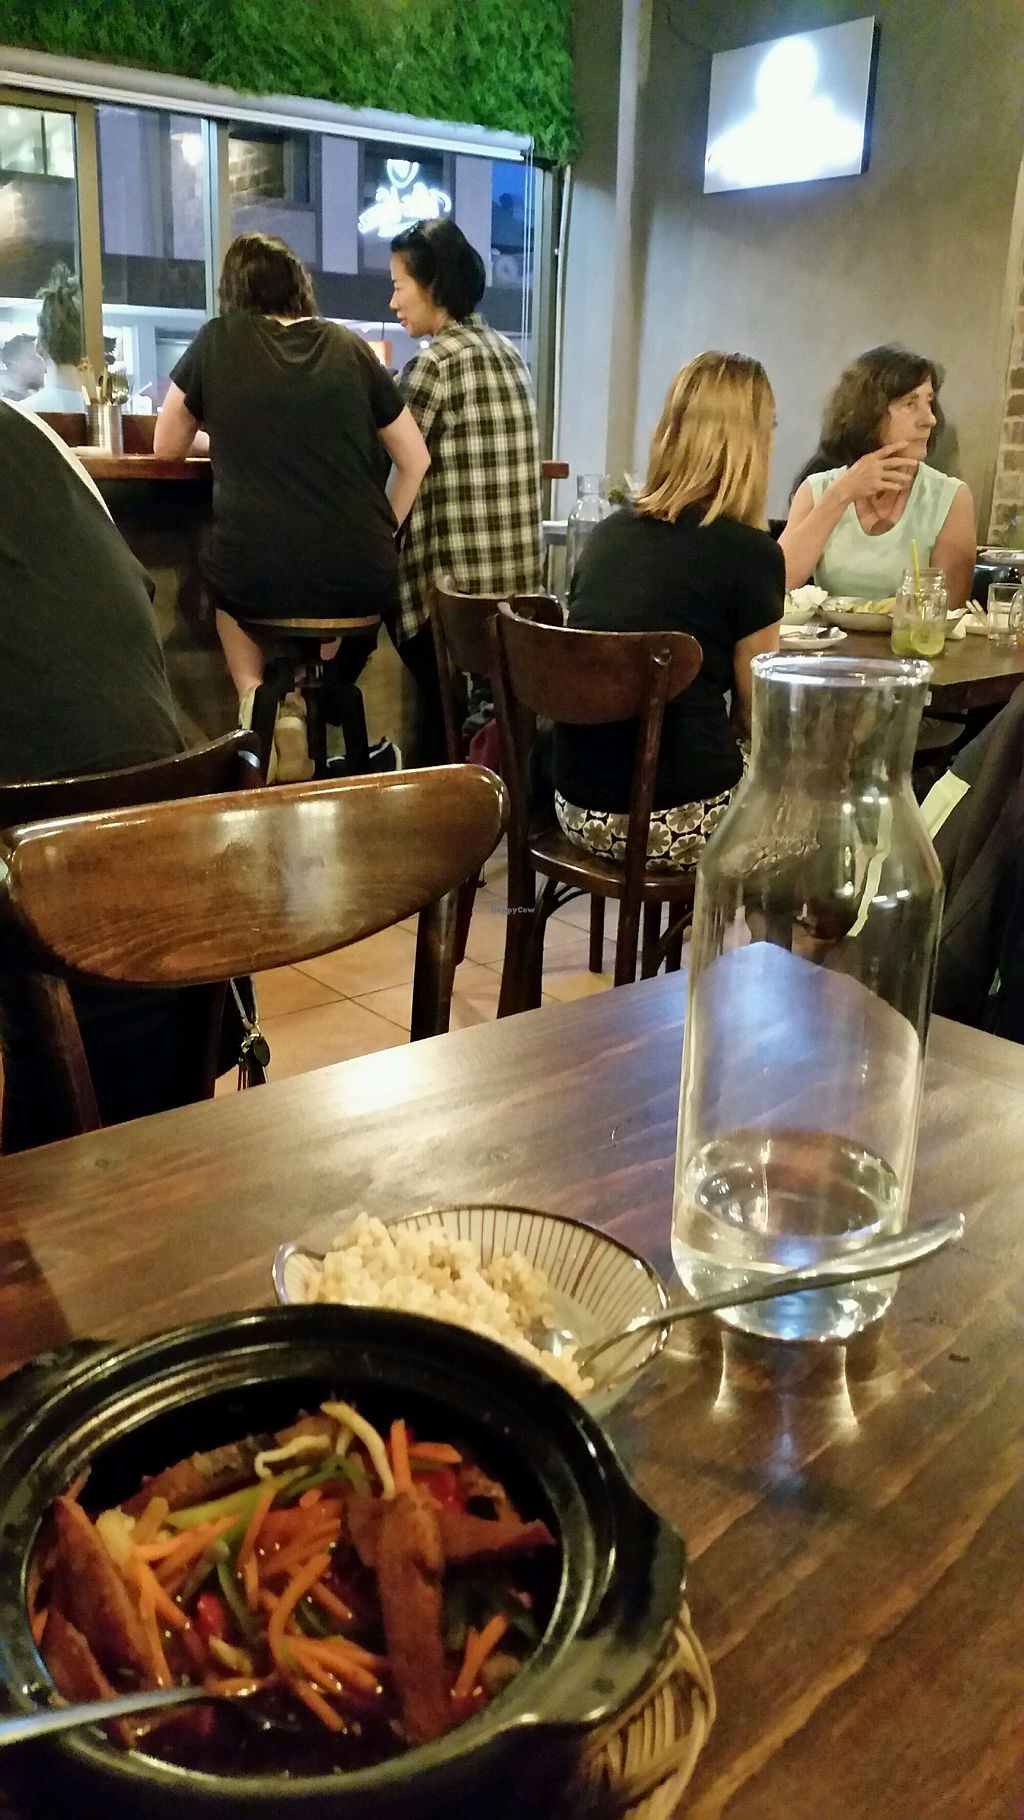 "Photo of Vina Vegan  by <a href=""/members/profile/MarianneFoley"">MarianneFoley</a> <br/>vina vegetarian reopening night  <br/> March 16, 2018  - <a href='/contact/abuse/image/17714/371257'>Report</a>"